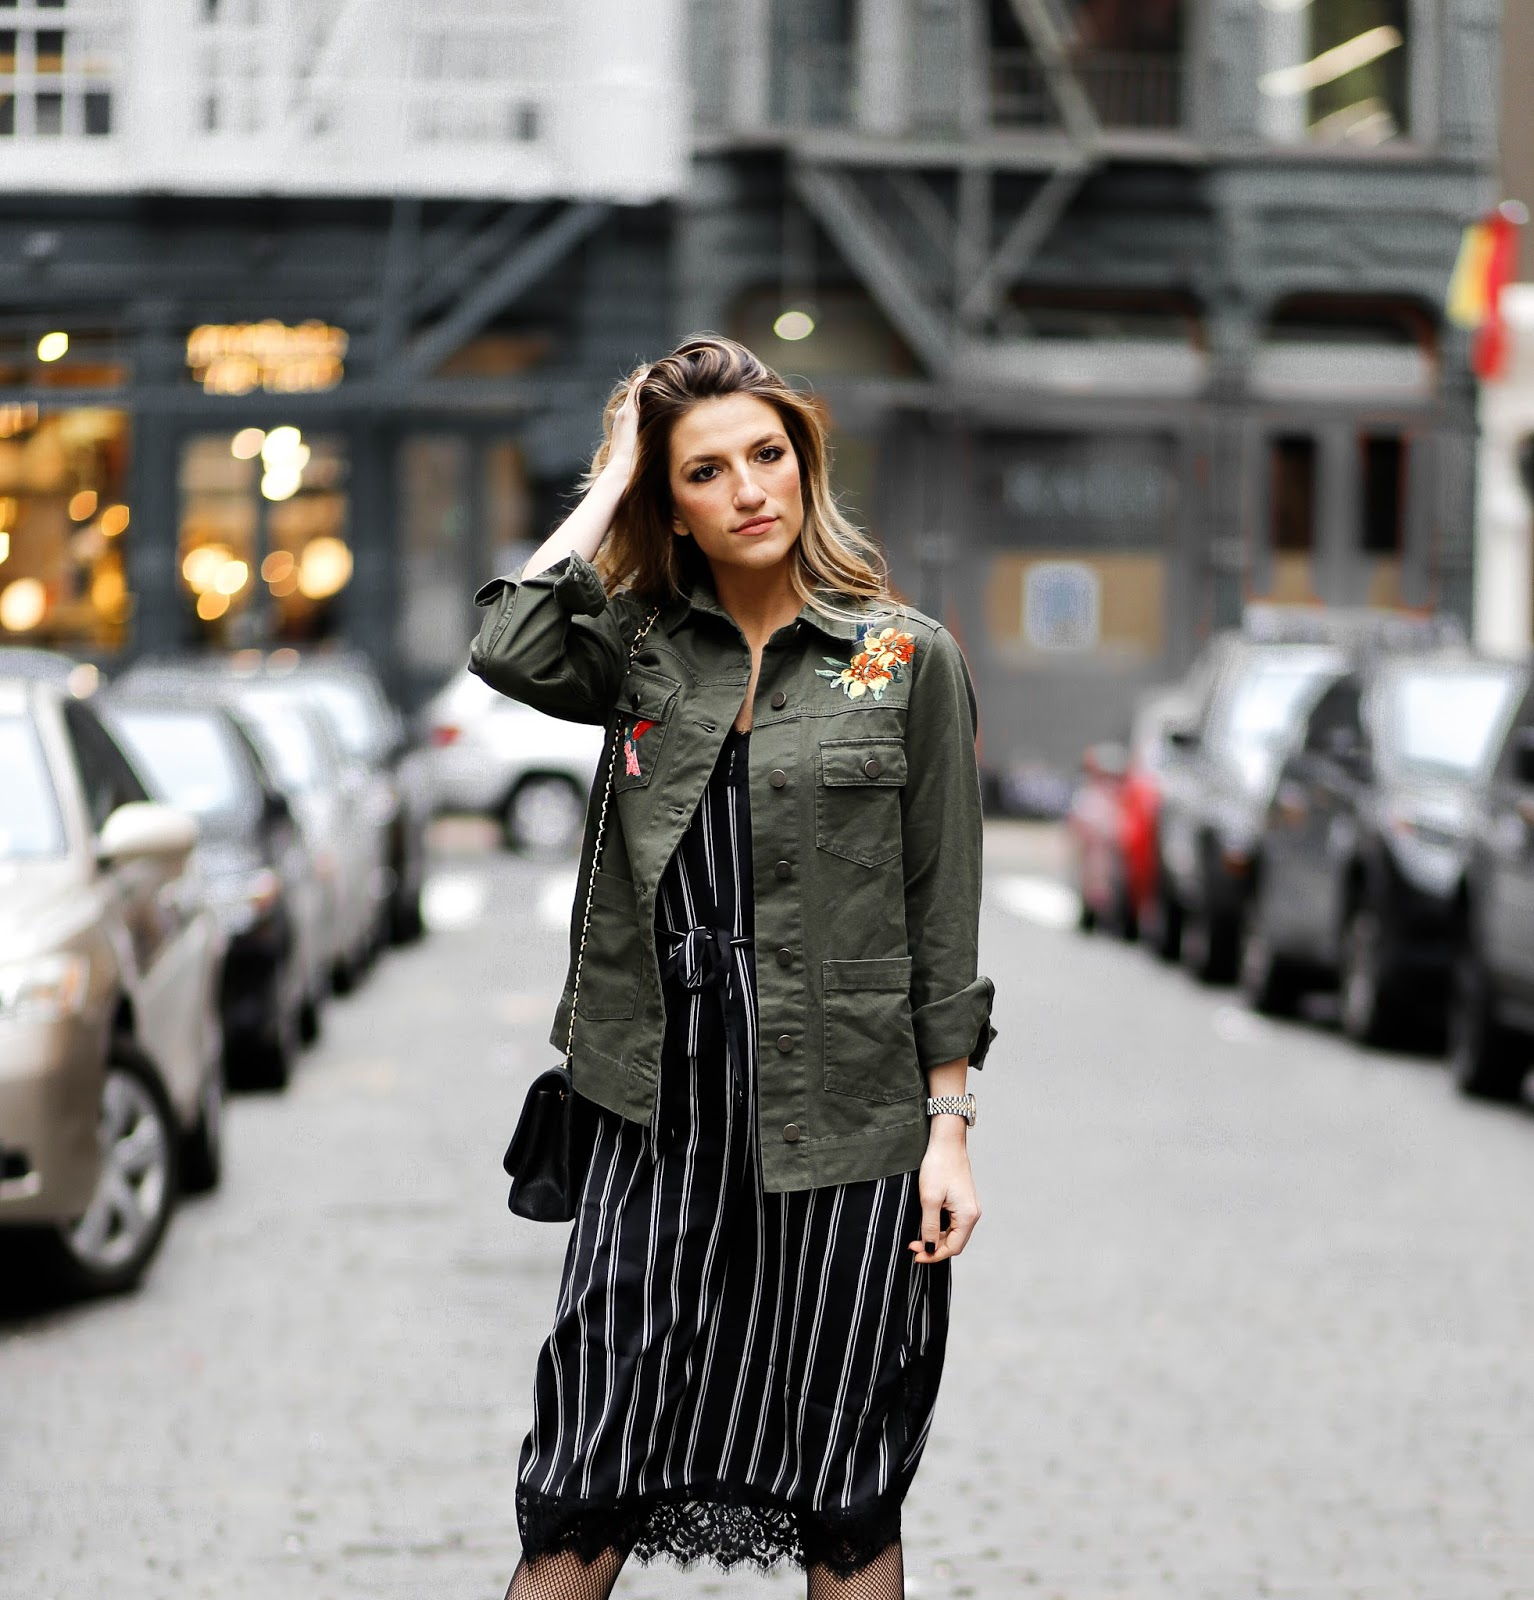 slip dress, embroidered military jacket